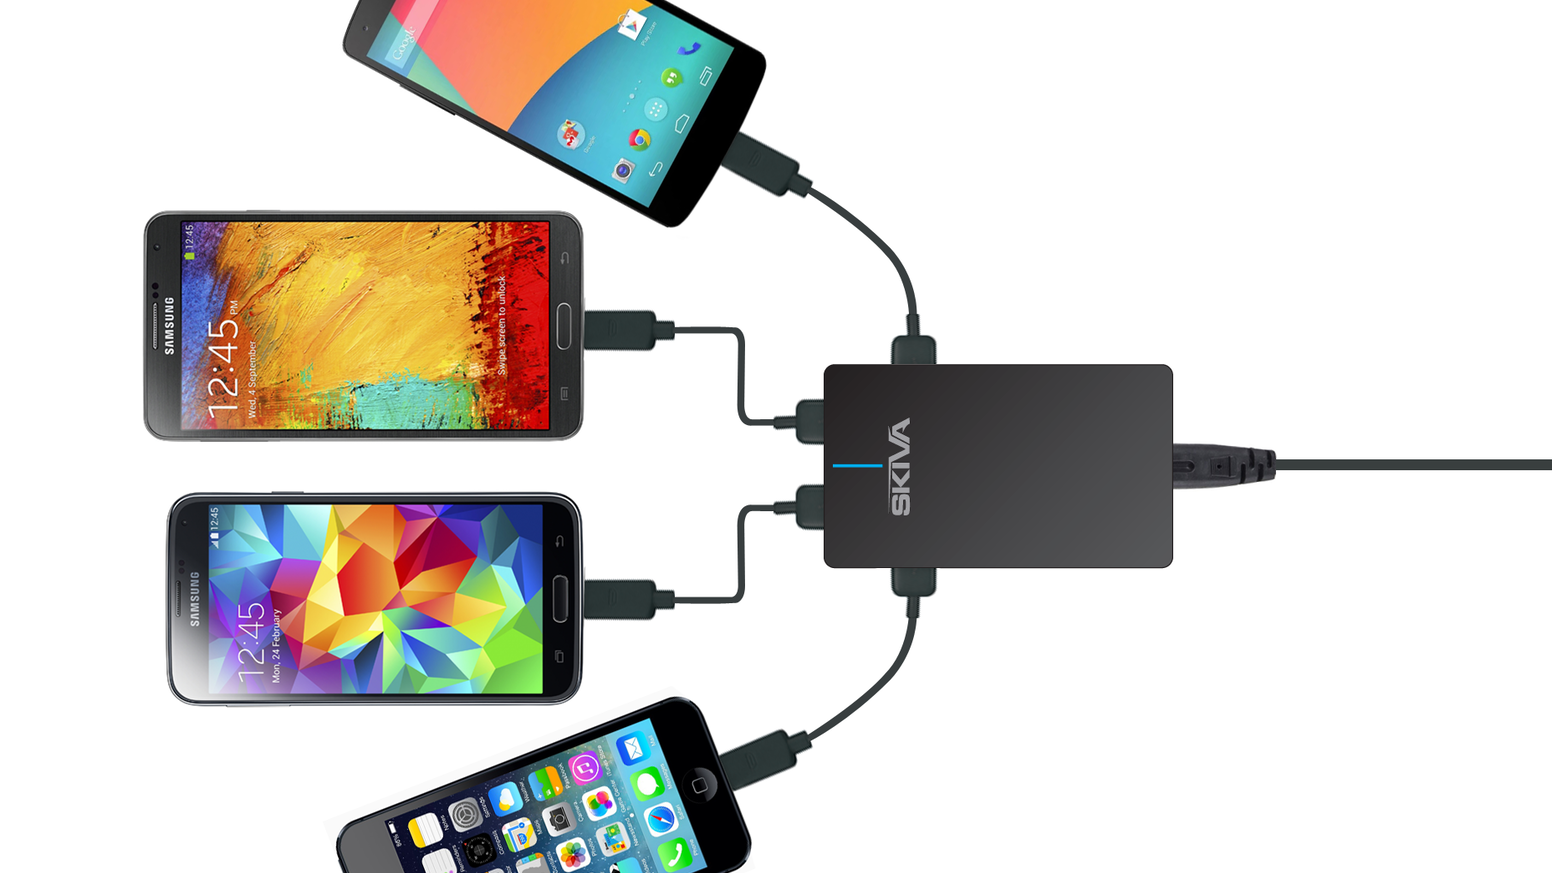 Universal 4 ports USB charger for iPhone, iPad, Android and other USB devices. Intelligent device detection for optimal charging.